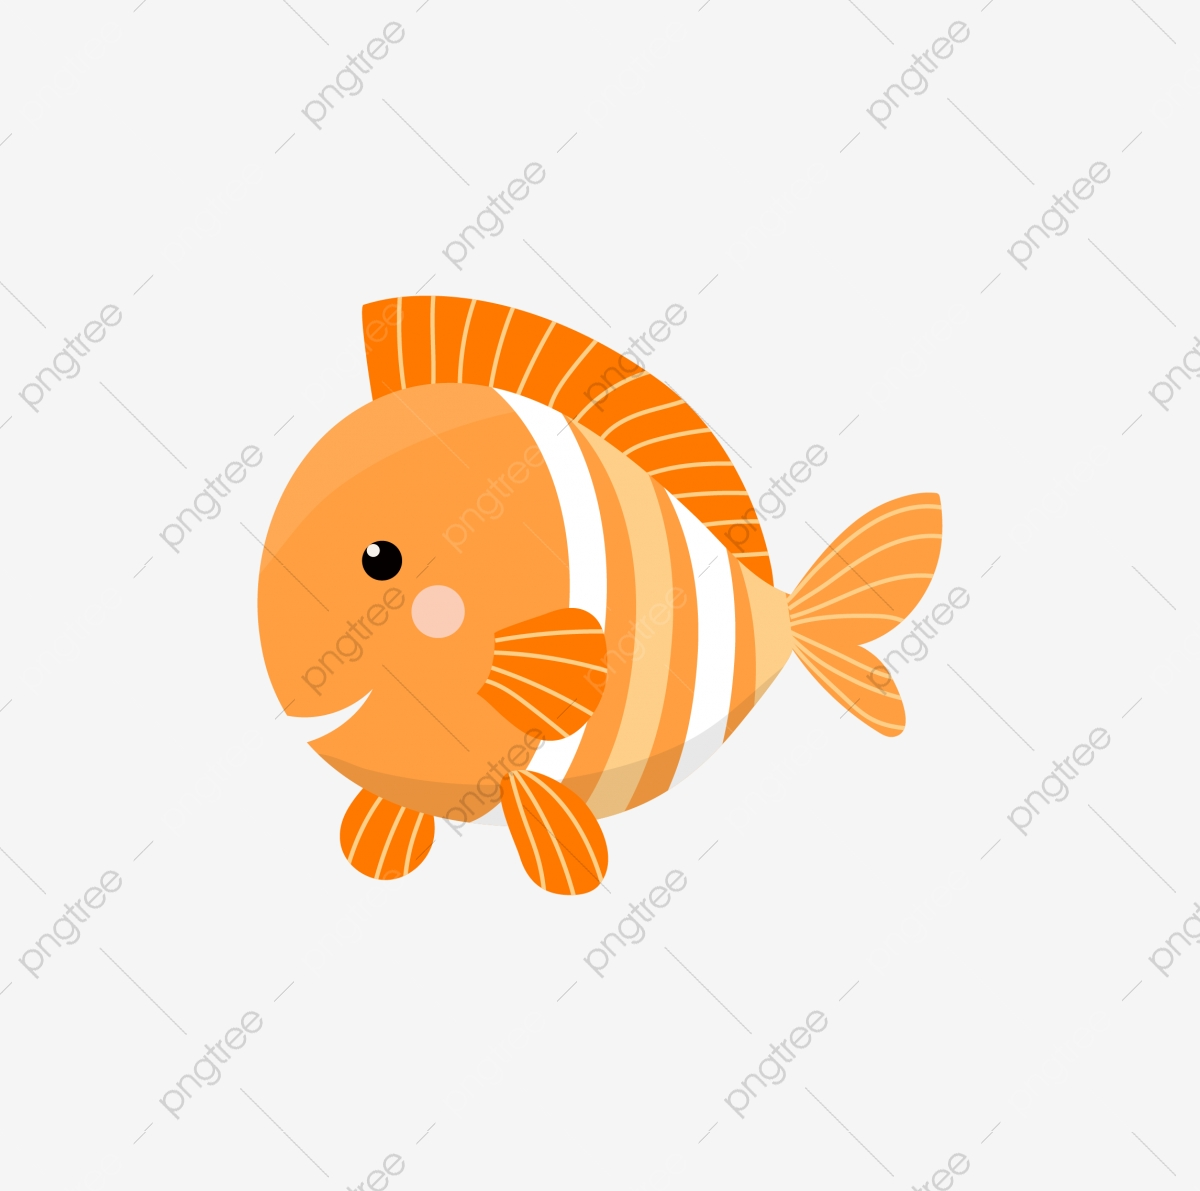 Ornamental Fish Cartoon Cute Cartoon Lovely Cute Cartoon Lovely Cartoon Png And Vector With Transparent Background For Free Download